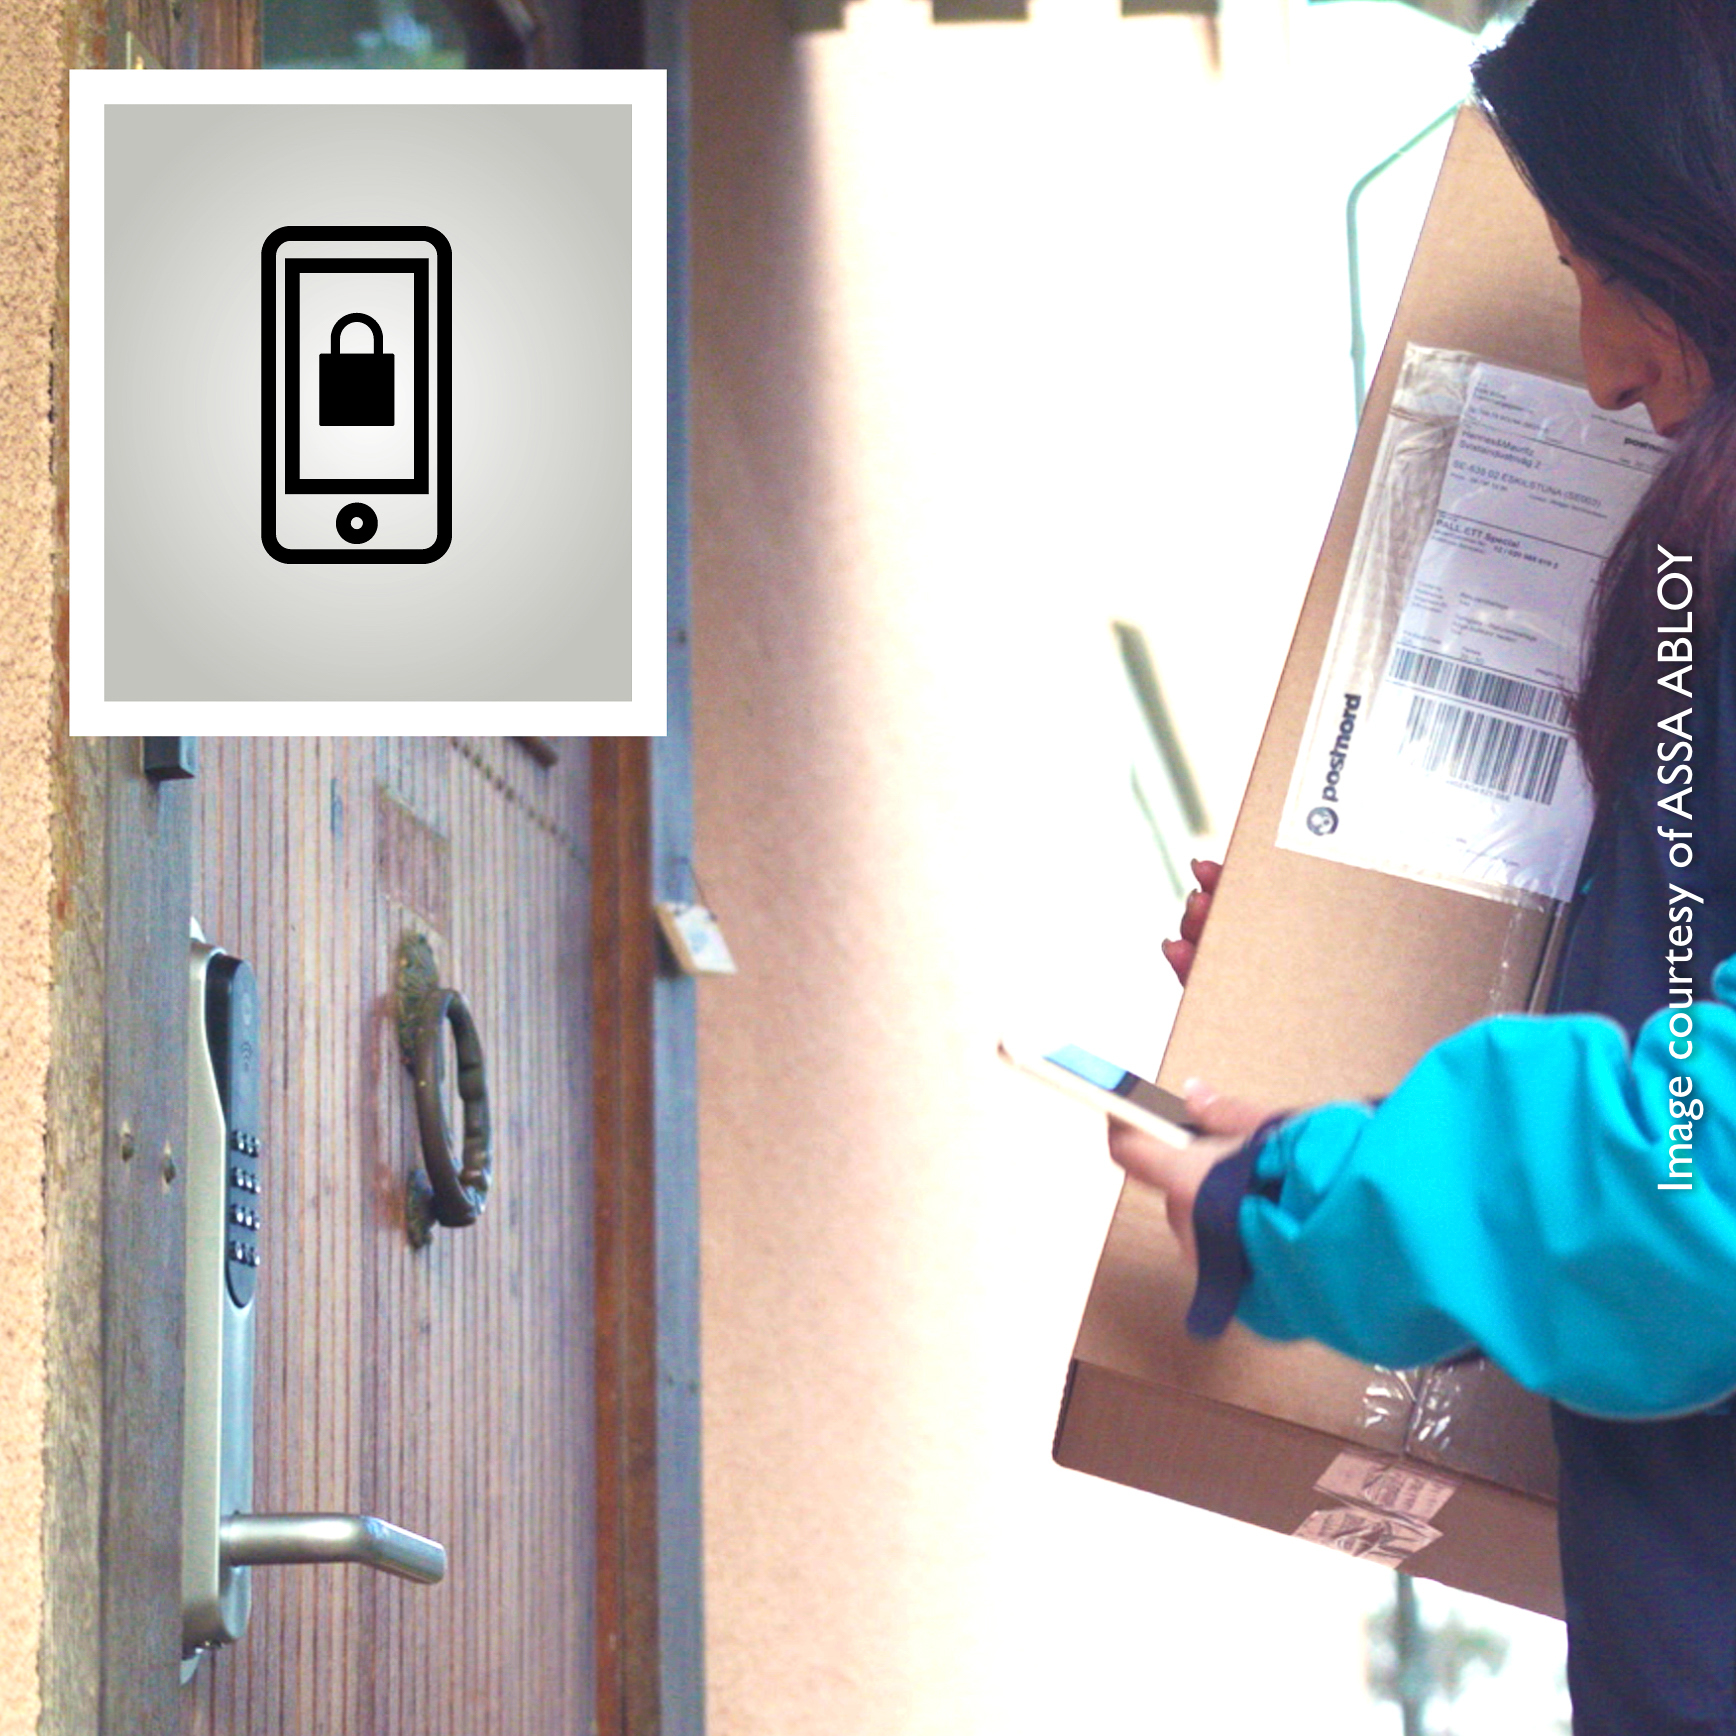 PostNord customers can have parcels delivered inside their door when it is equipped with an ASSA ABLOY smart lock. Authorised PostNord drivers receive a single-use PIN code to open the door.